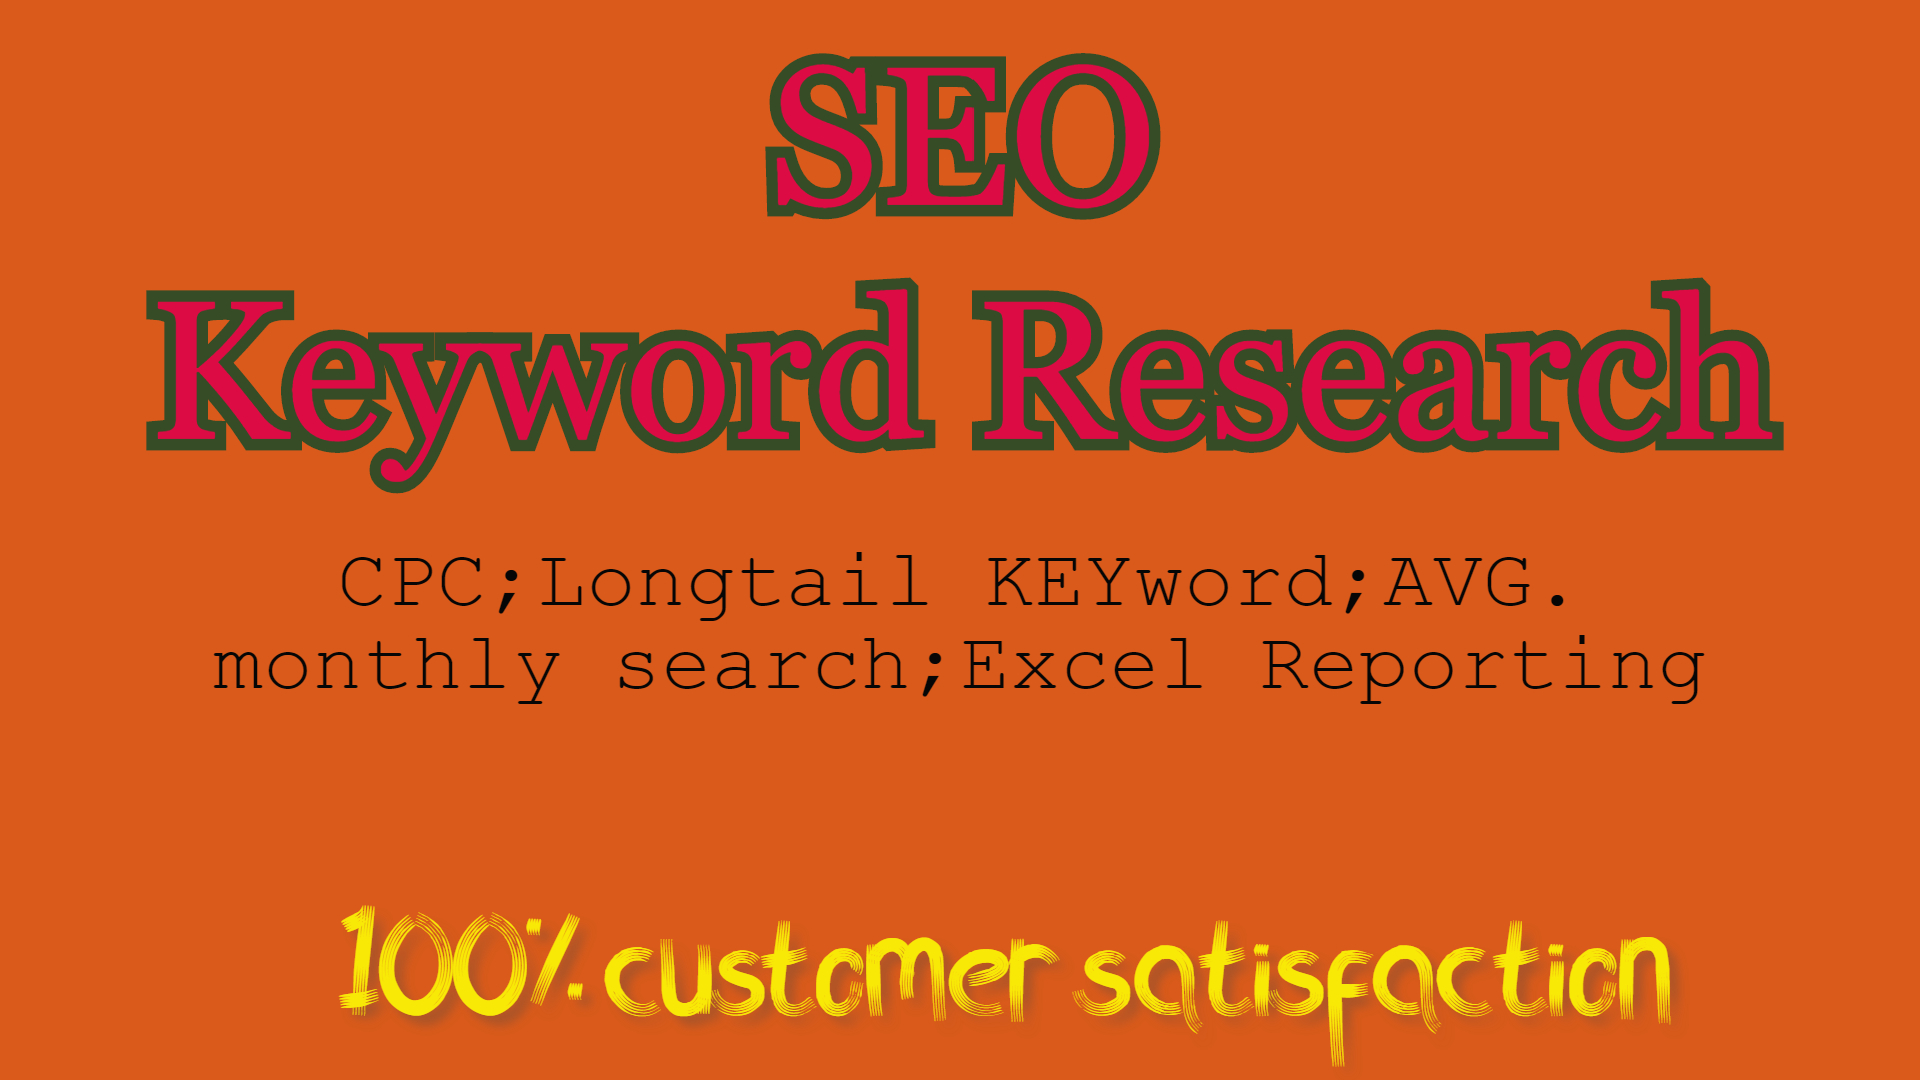 30 white hat brainstormed keyword will be provided to get you the eggs of the golden goose